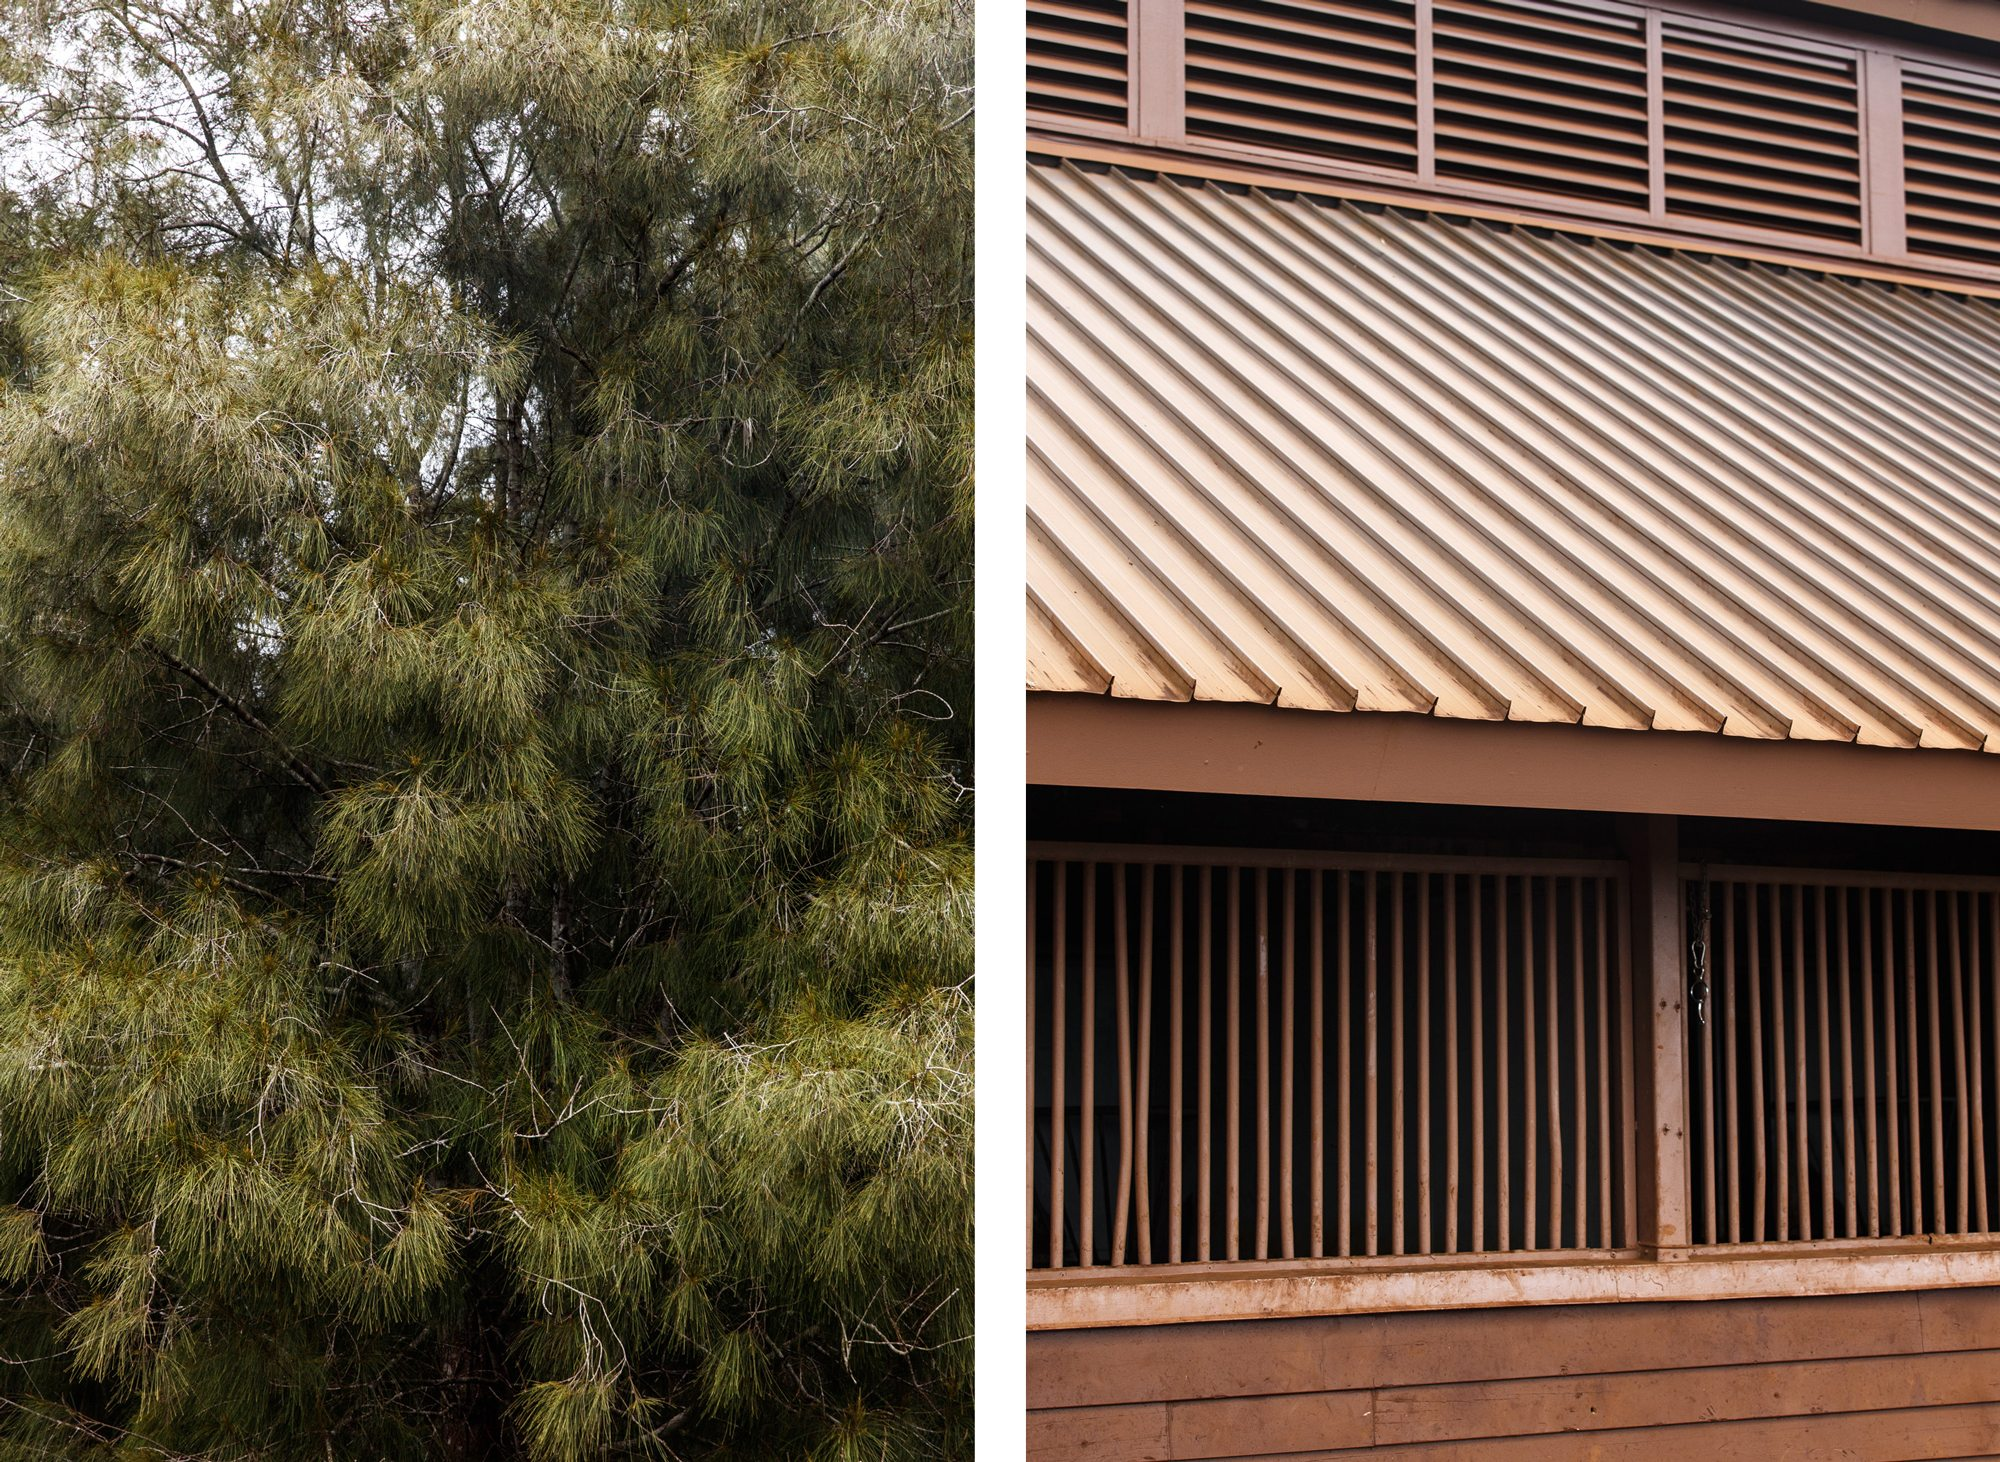 Lanai pine tree, stable roof and window comparison